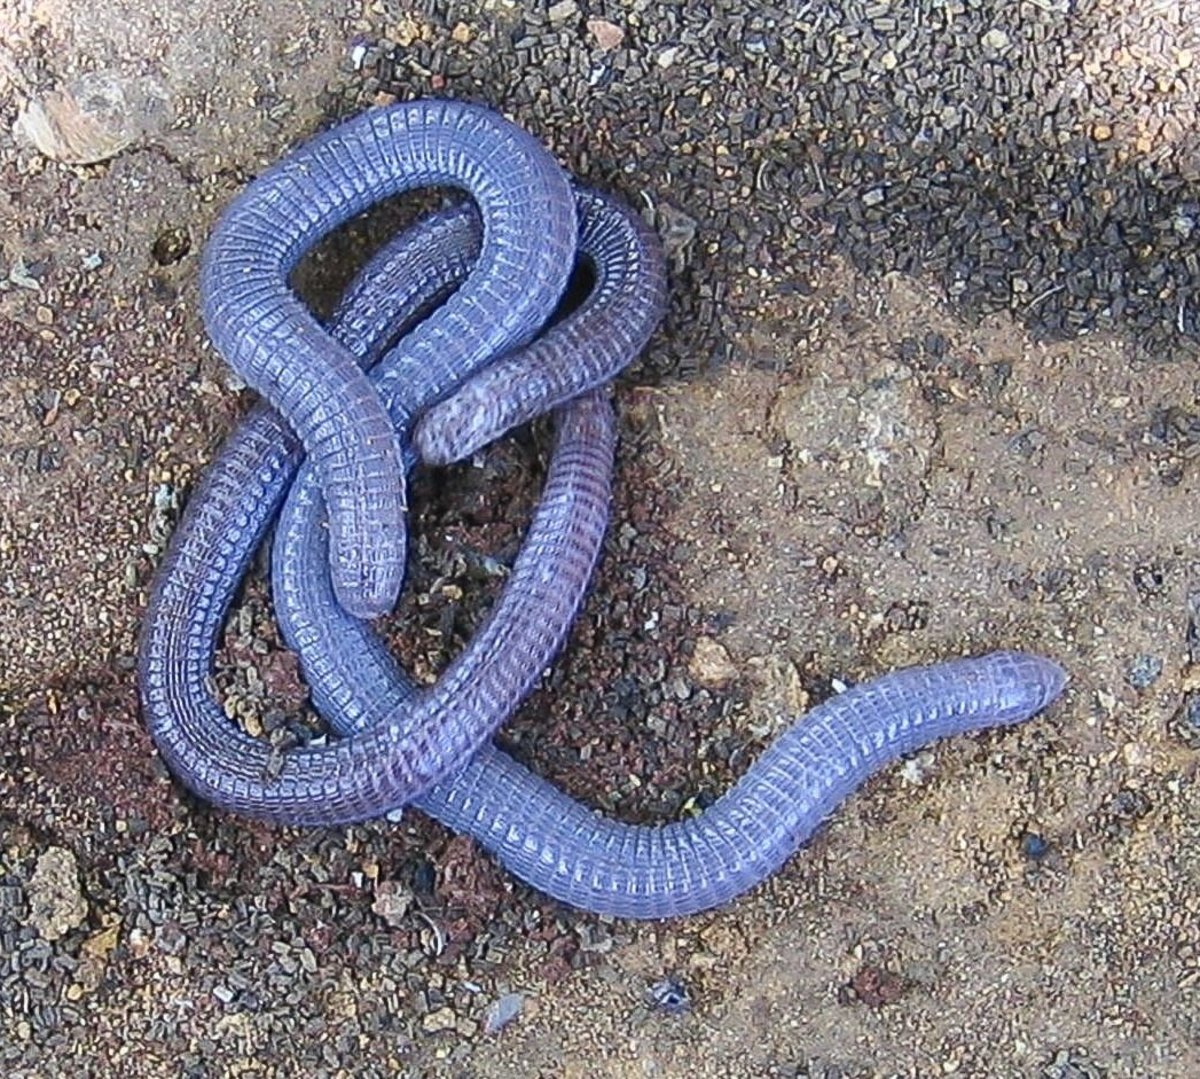 Weird and  Interesting Reptiles - Mole and Worm Lizards